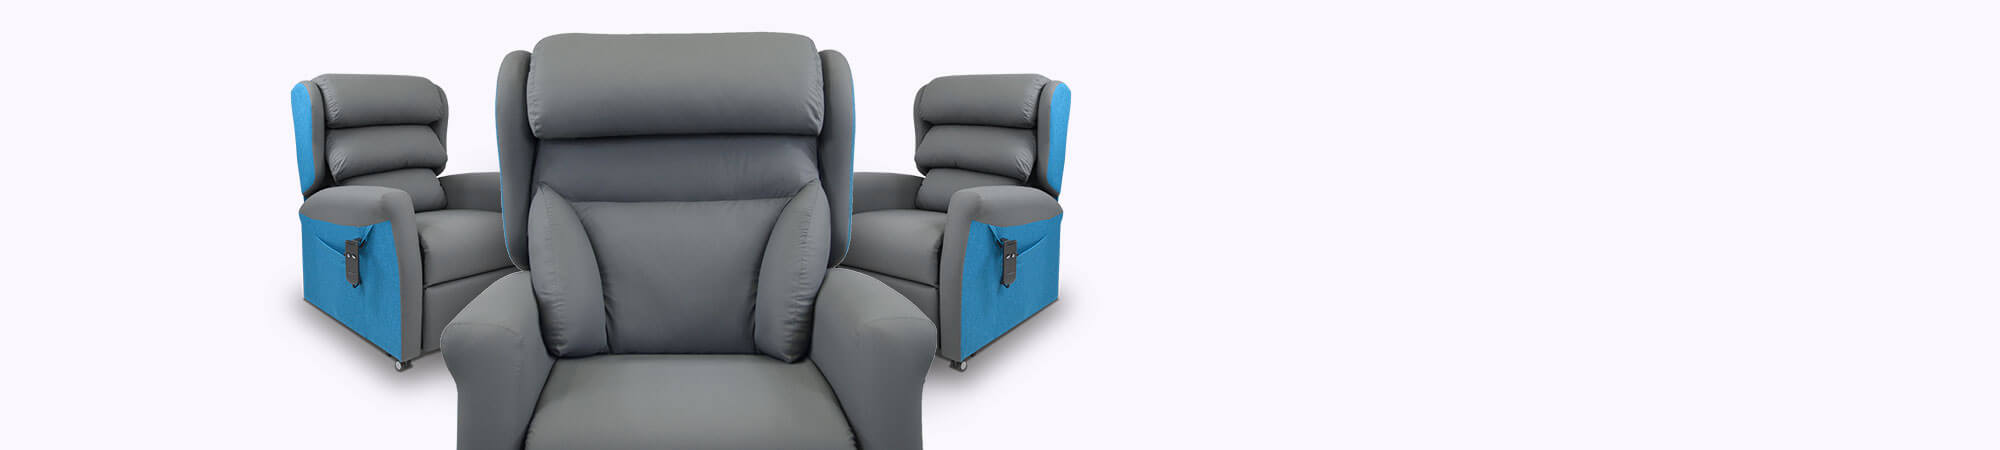 New_Concerto_Recliners_banner